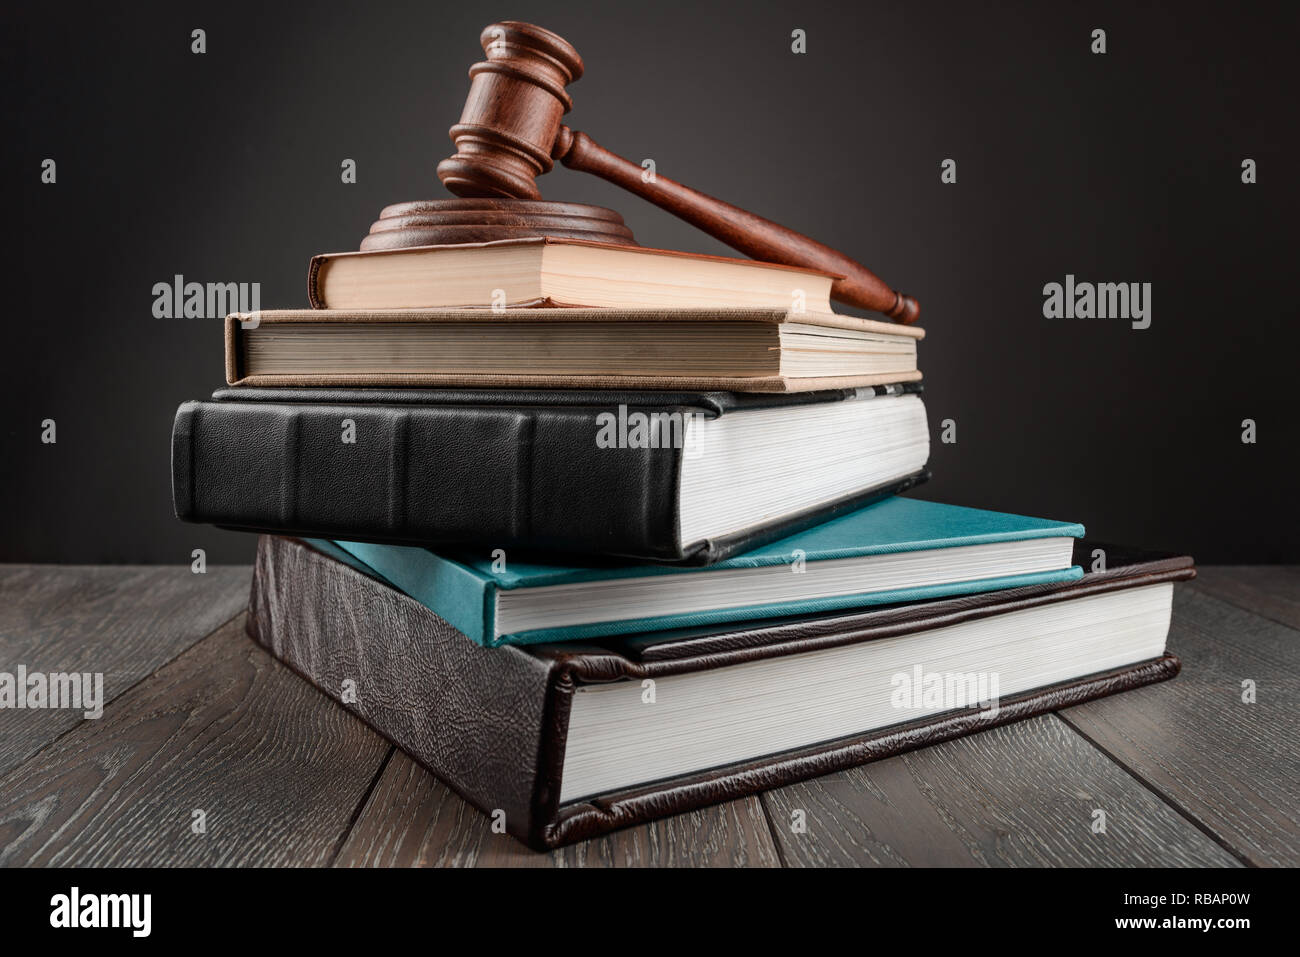 Gavel on top of books - Stock Image